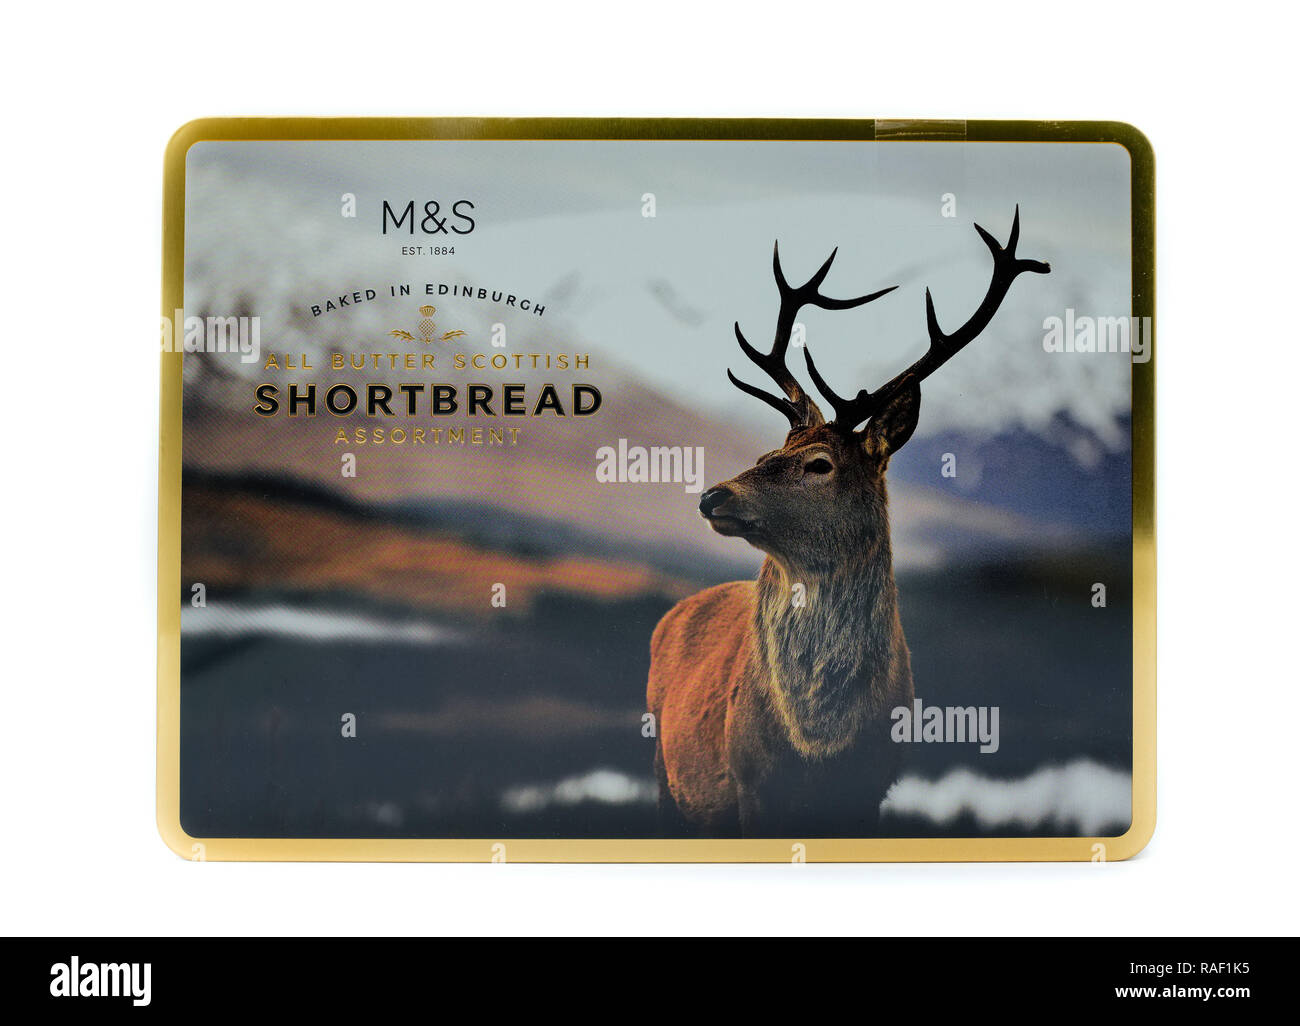 Largs, Scotland, UK - January 02, 2018: M&S branded shortbread biscuits in traditional tin box which is partially recyclable. - Stock Image